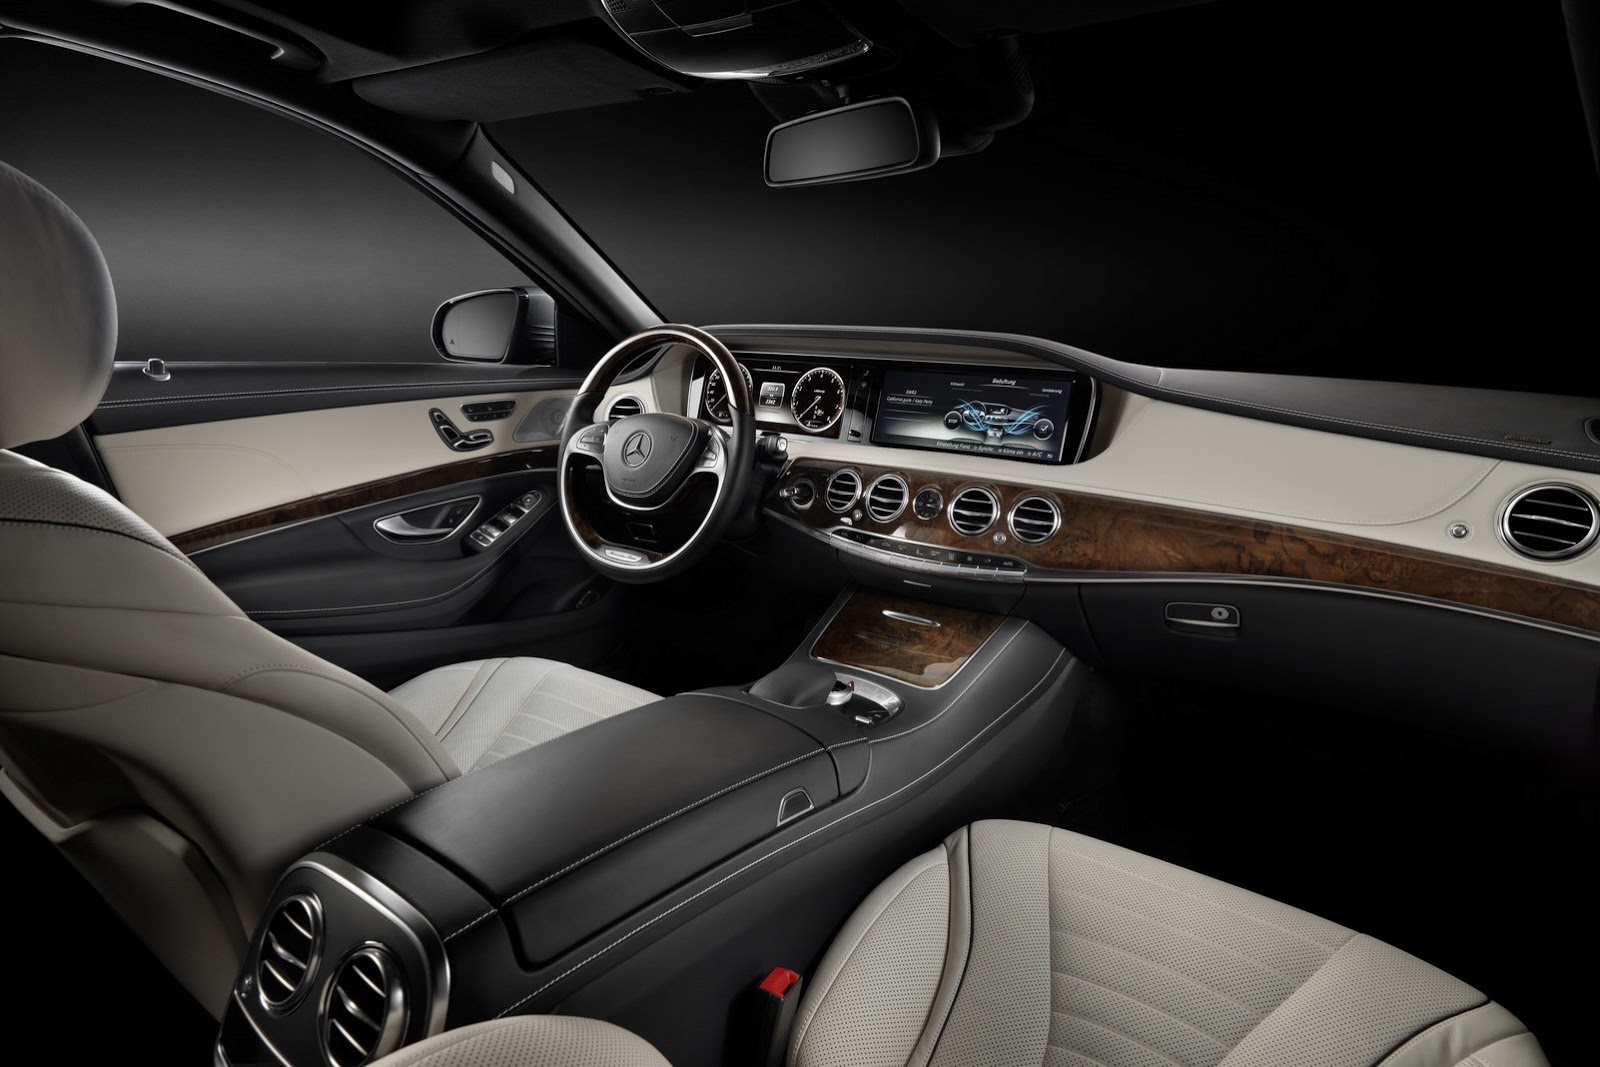 2014 Mercedes Benz S-Class - SMADE MEDIA (13)